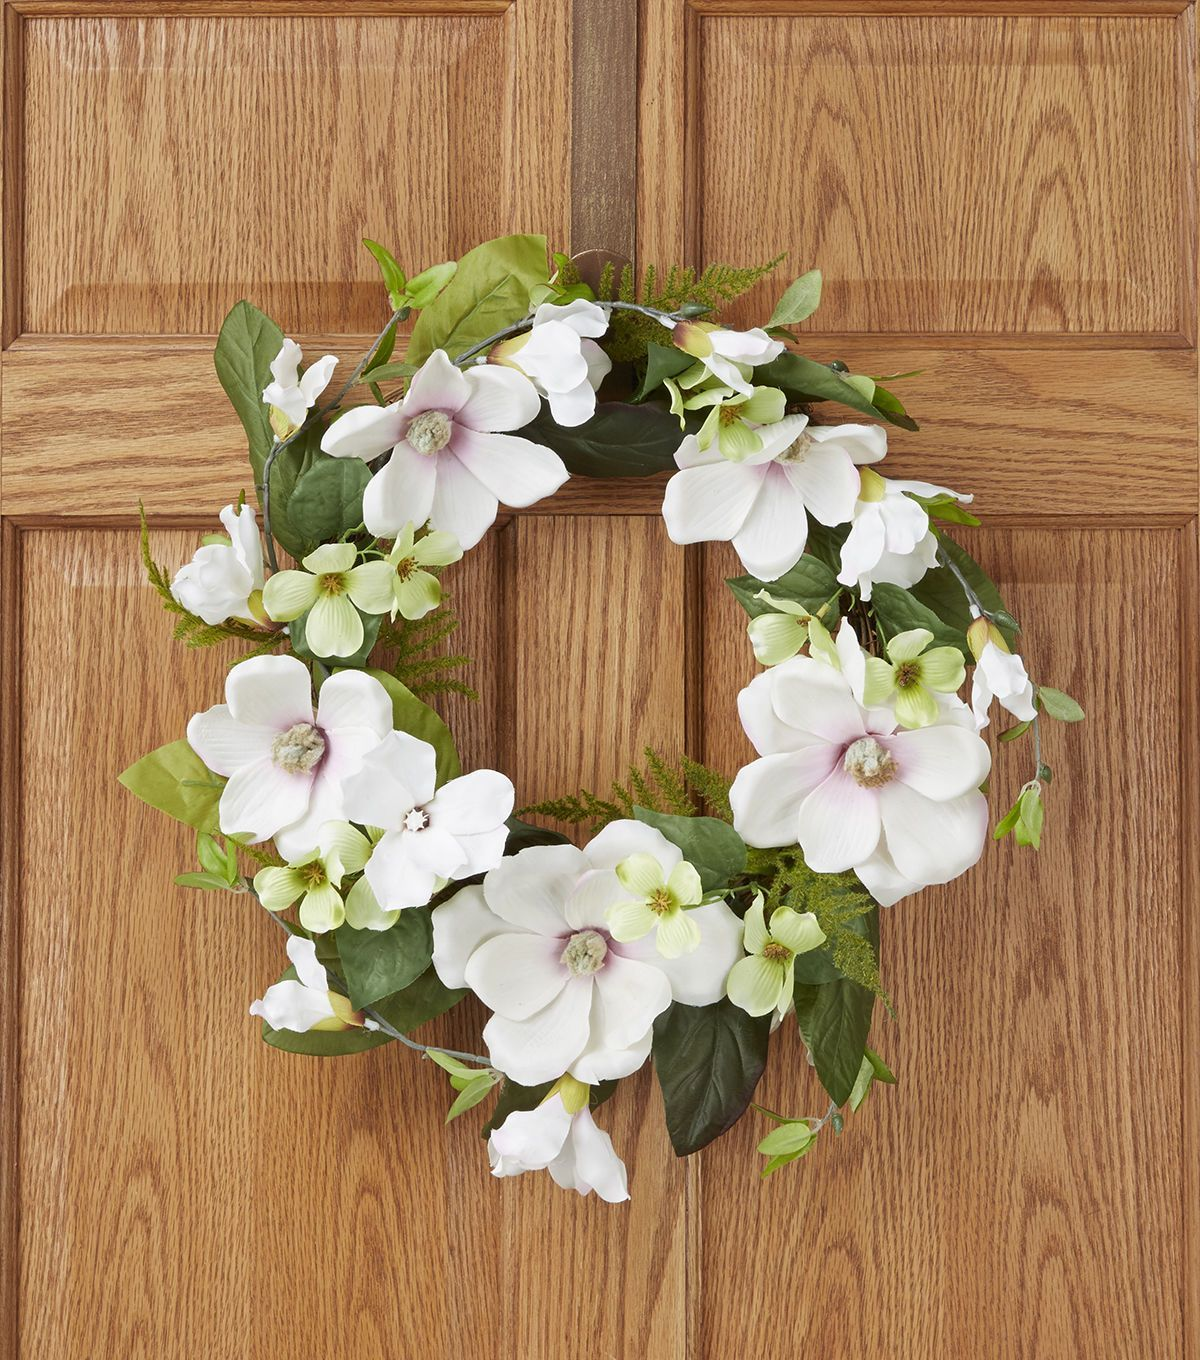 Gift the spring floral 22 pink and green magnolia dogwood hydrangea gift the spring floral 22 pink and green magnolia dogwood hydrangea wreath to a dear one mightylinksfo